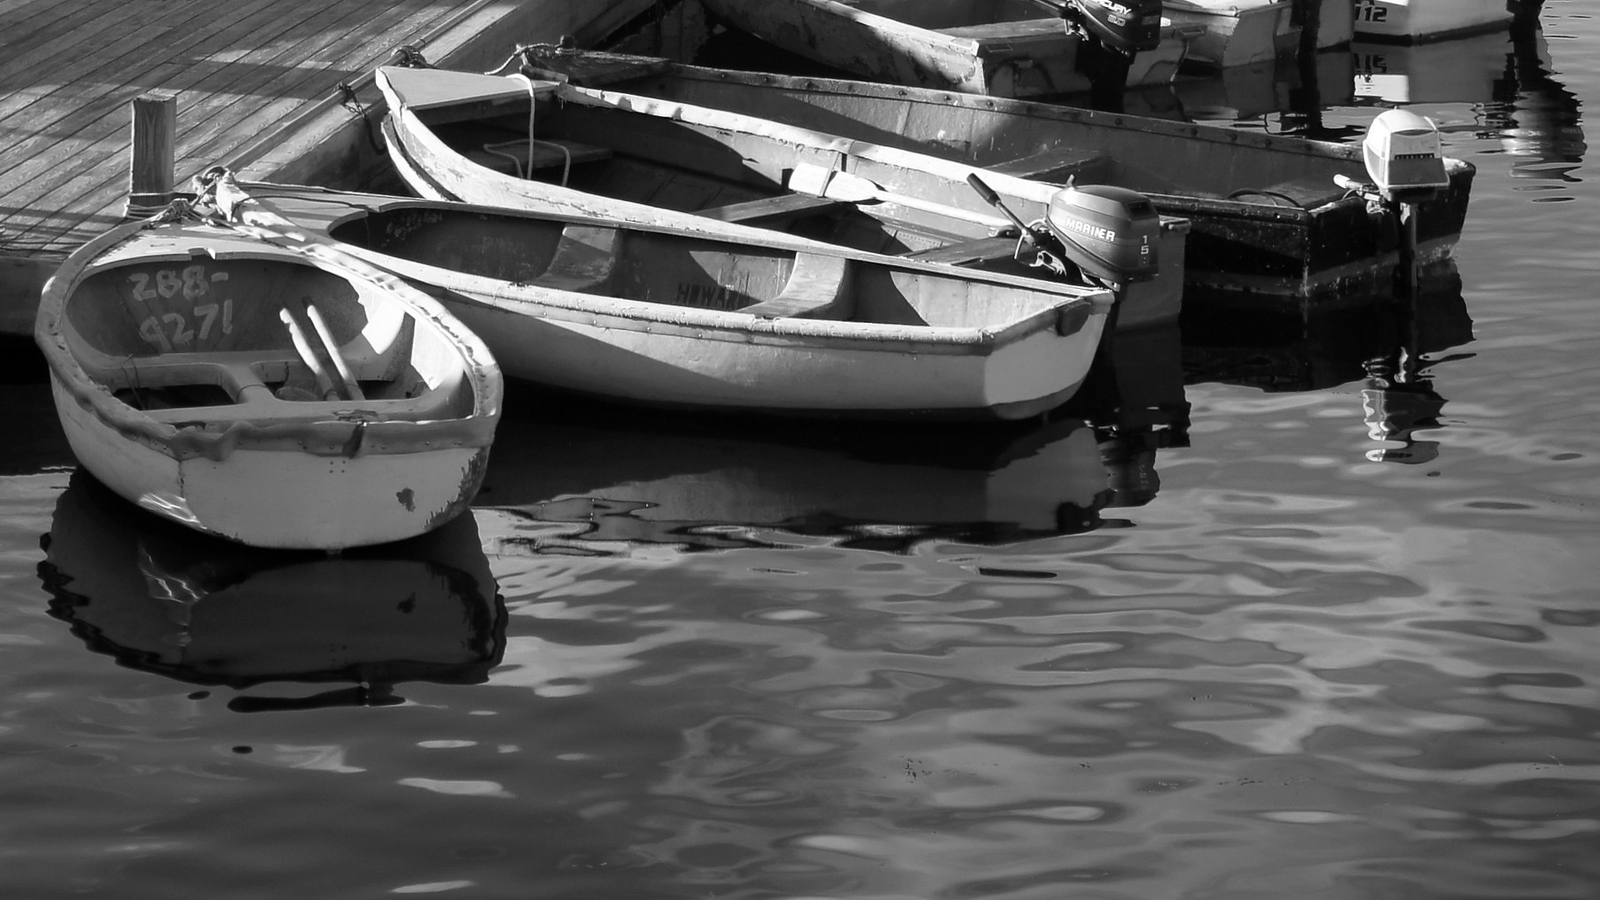 Dinghies in Afternoon Light, Bar Harbor, Maine, 2011.